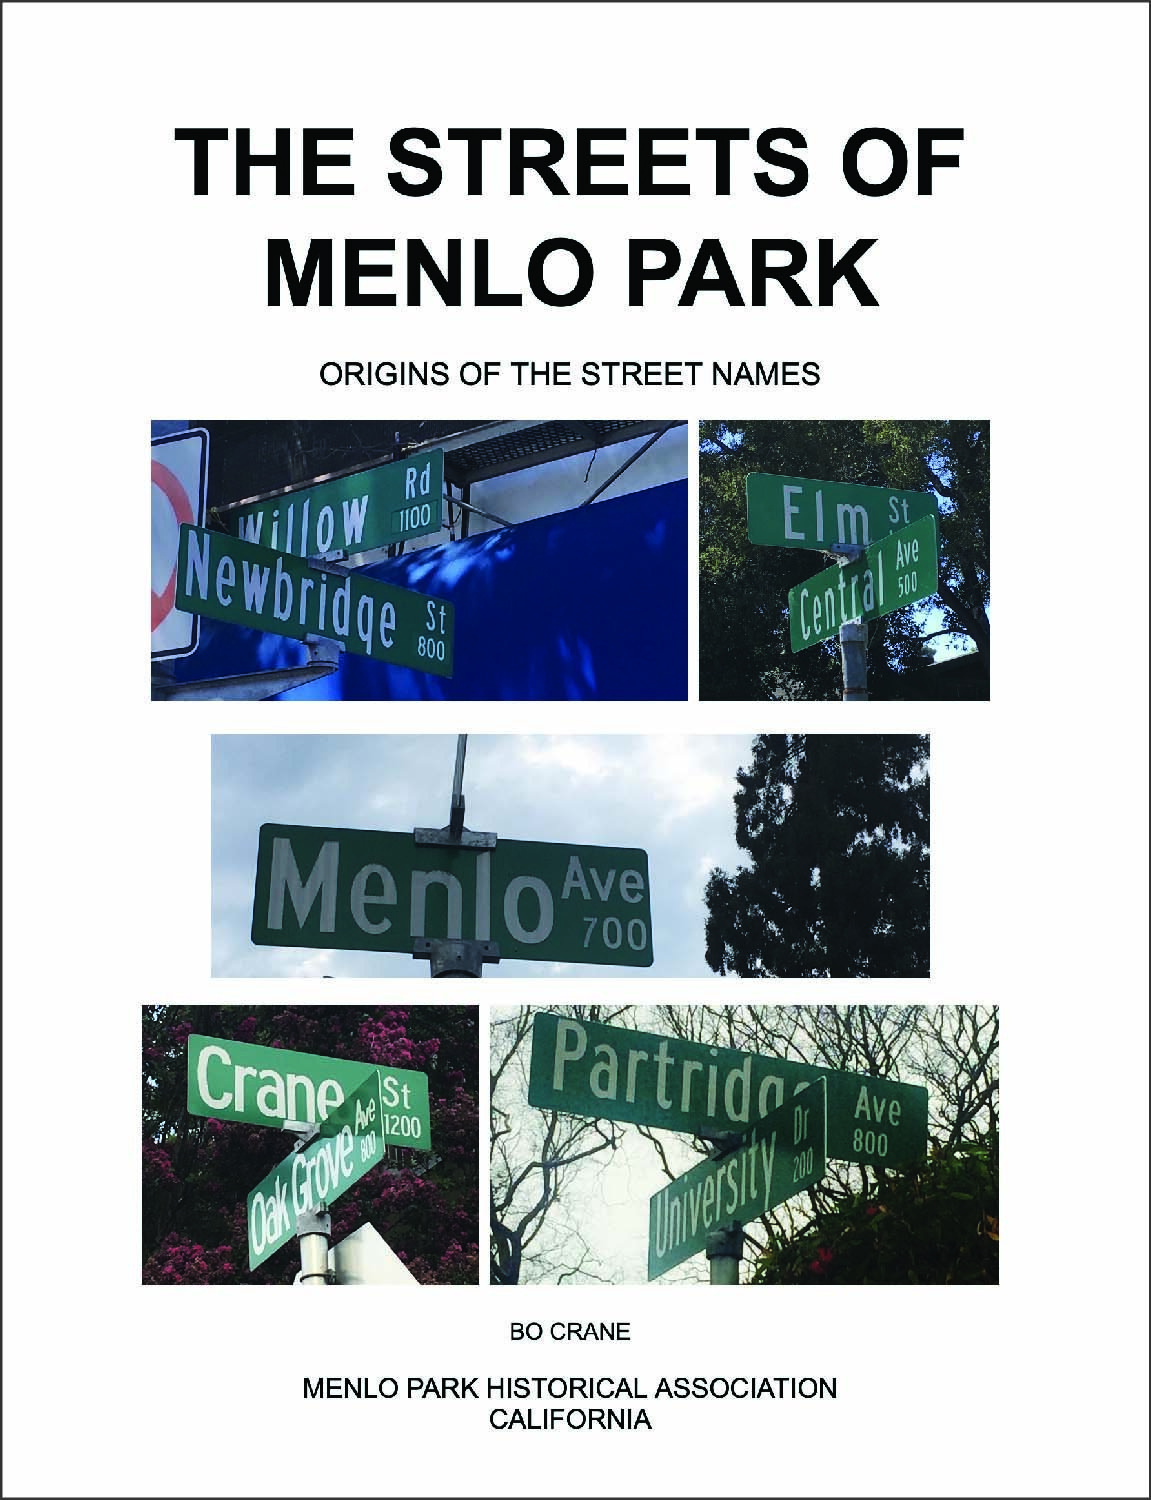 The streets of menlo park, origins of the street names by Bo Crane